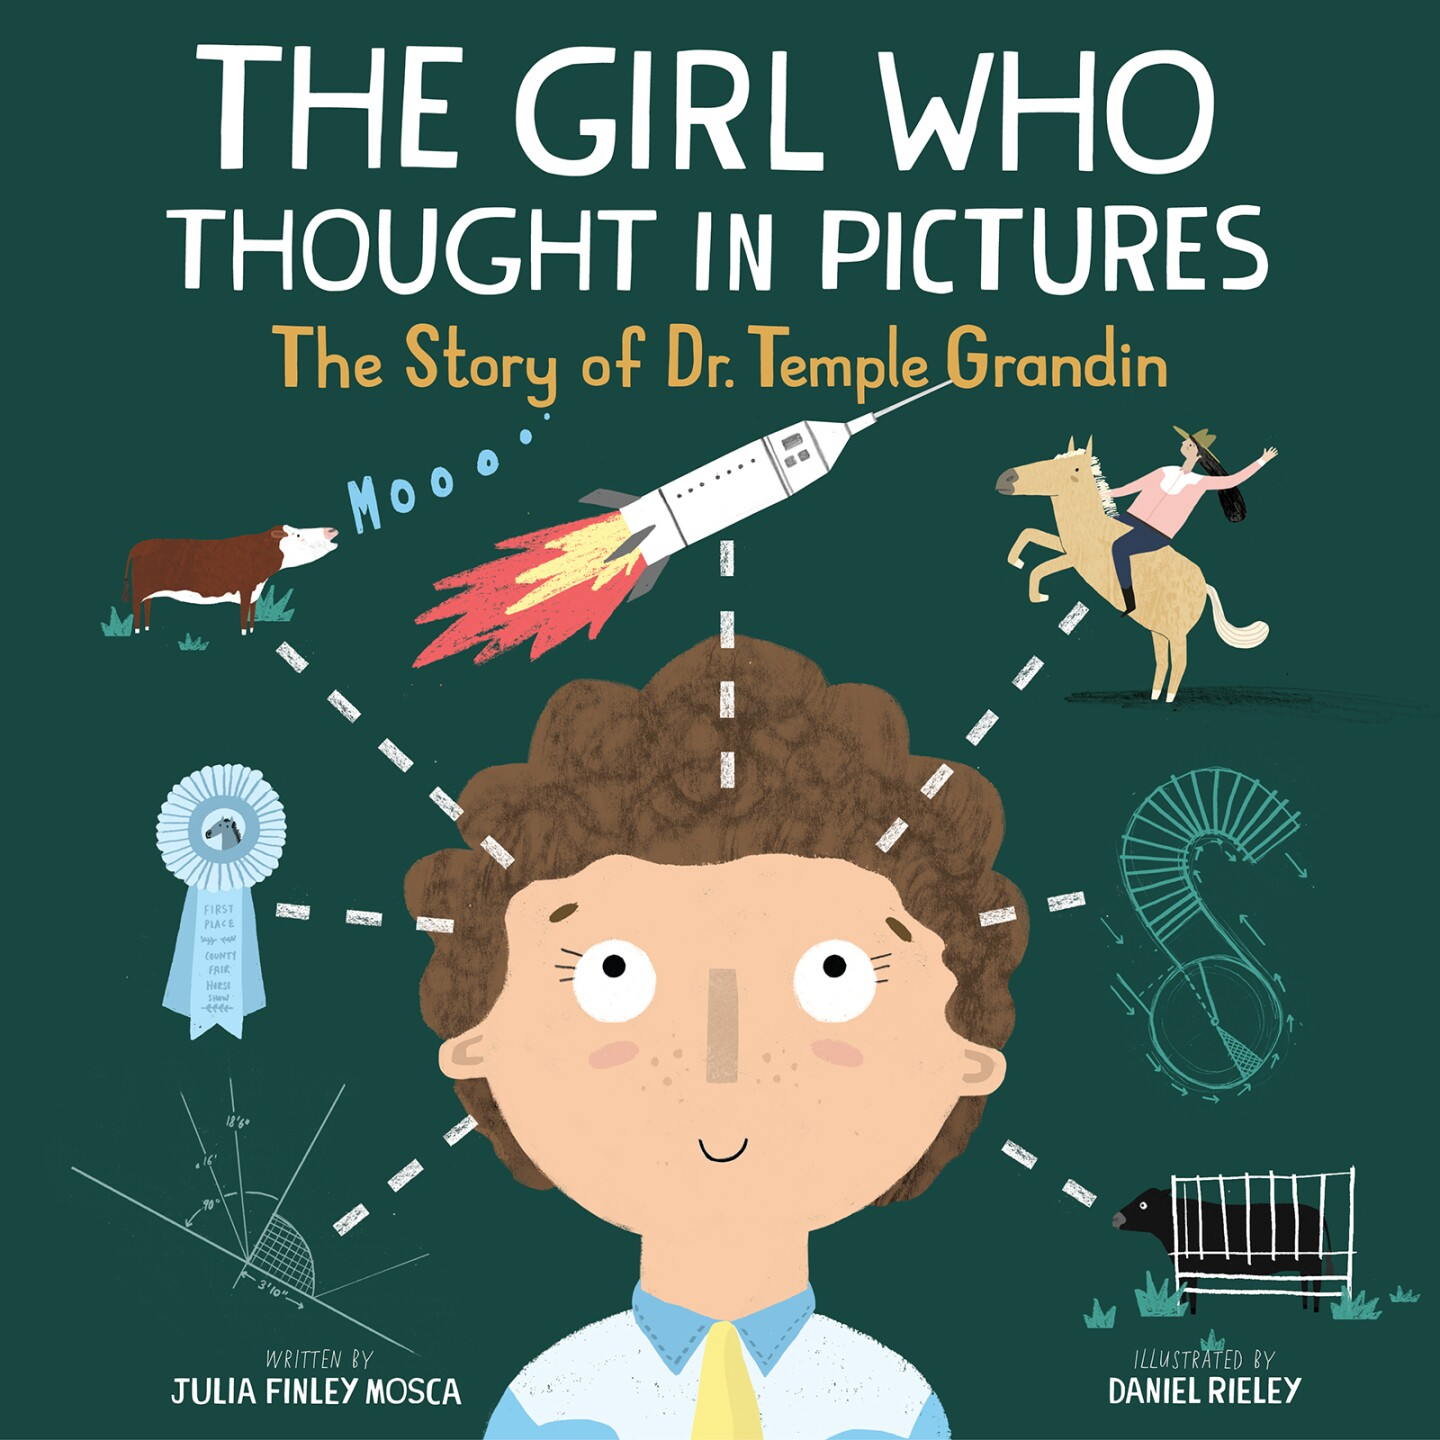 """Book cover of """"The Girl Who Thought In Pictures,"""" featuring an illustration of a girl's head surrounded by a cow, a rocket, a cowgirl, graphs and a blue ribbon award."""